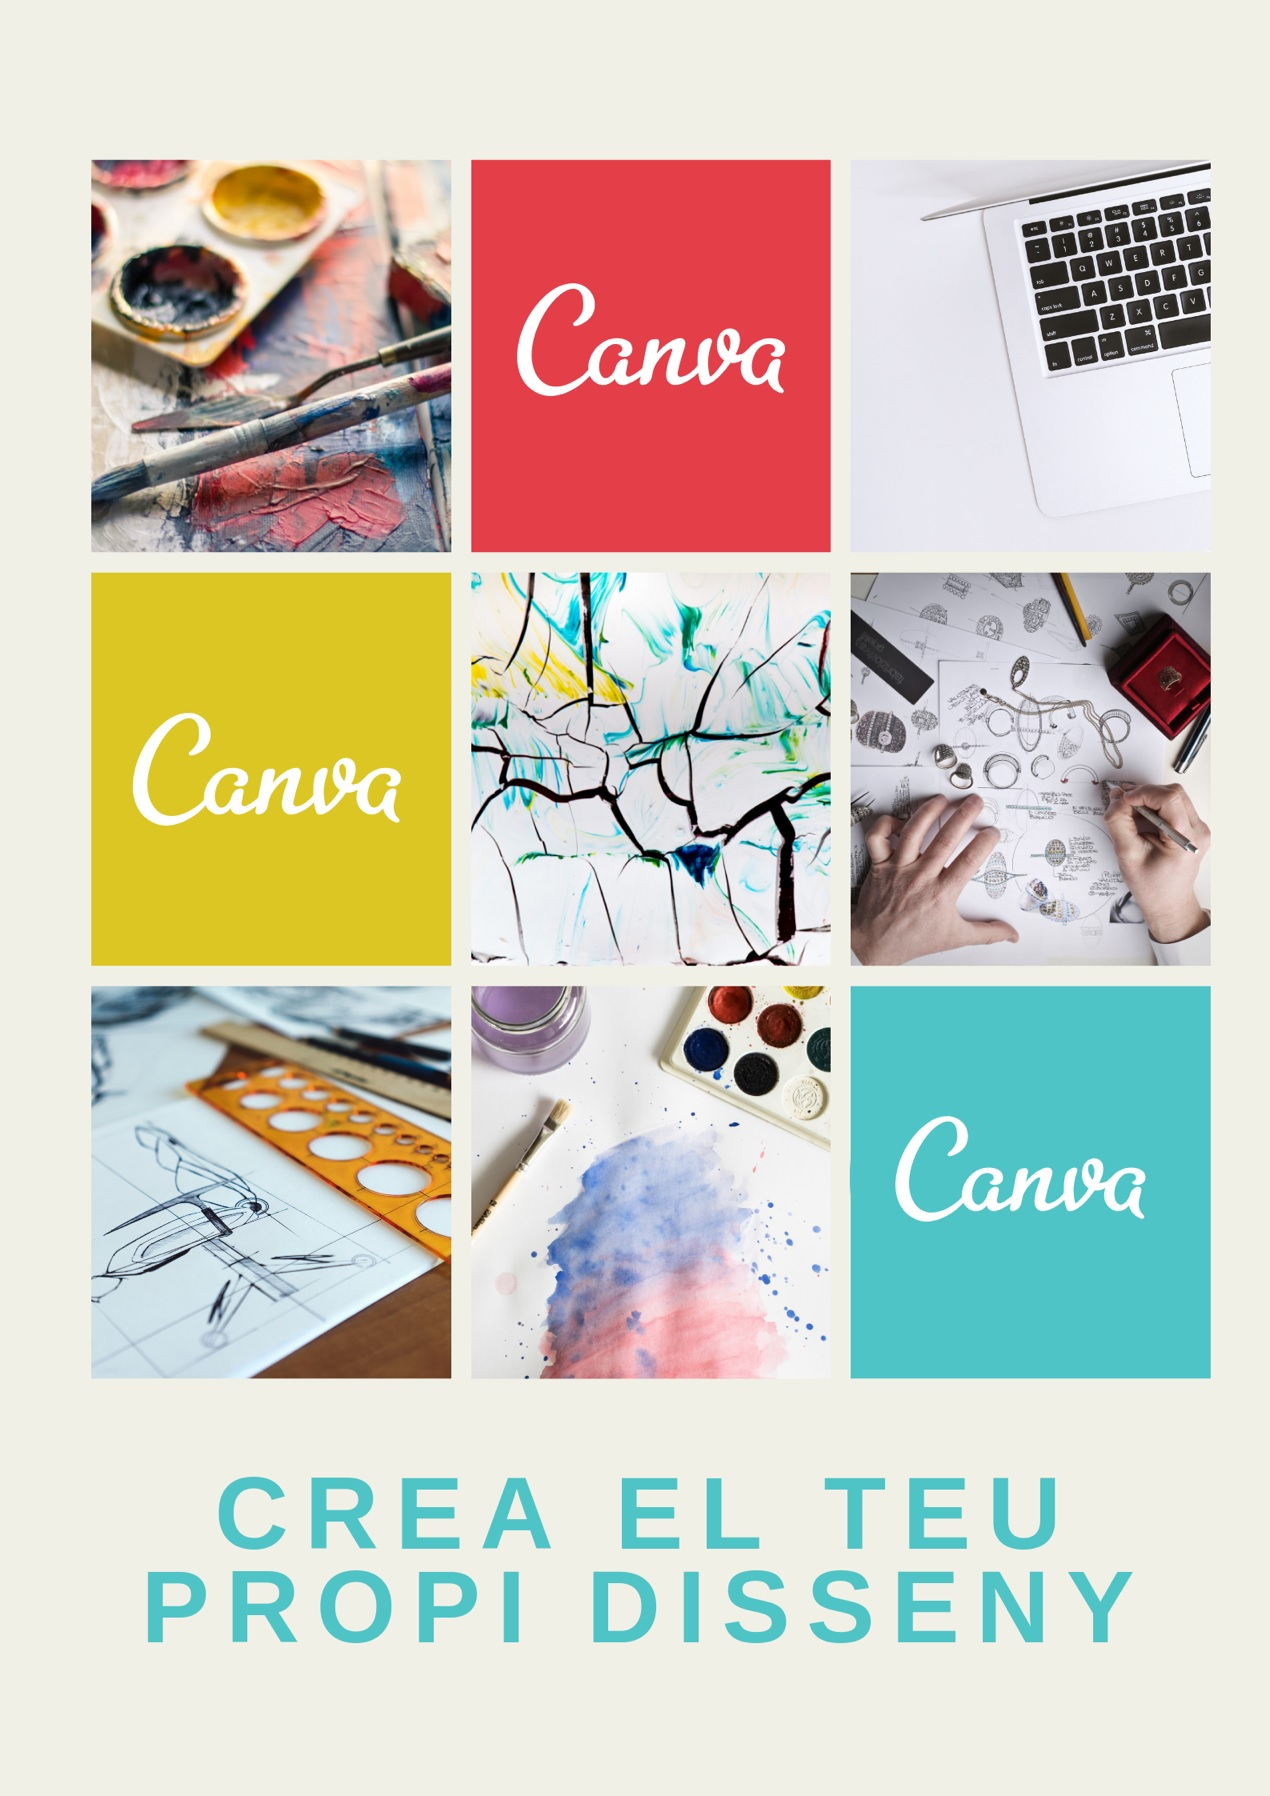 Portada del manual sobre Canva